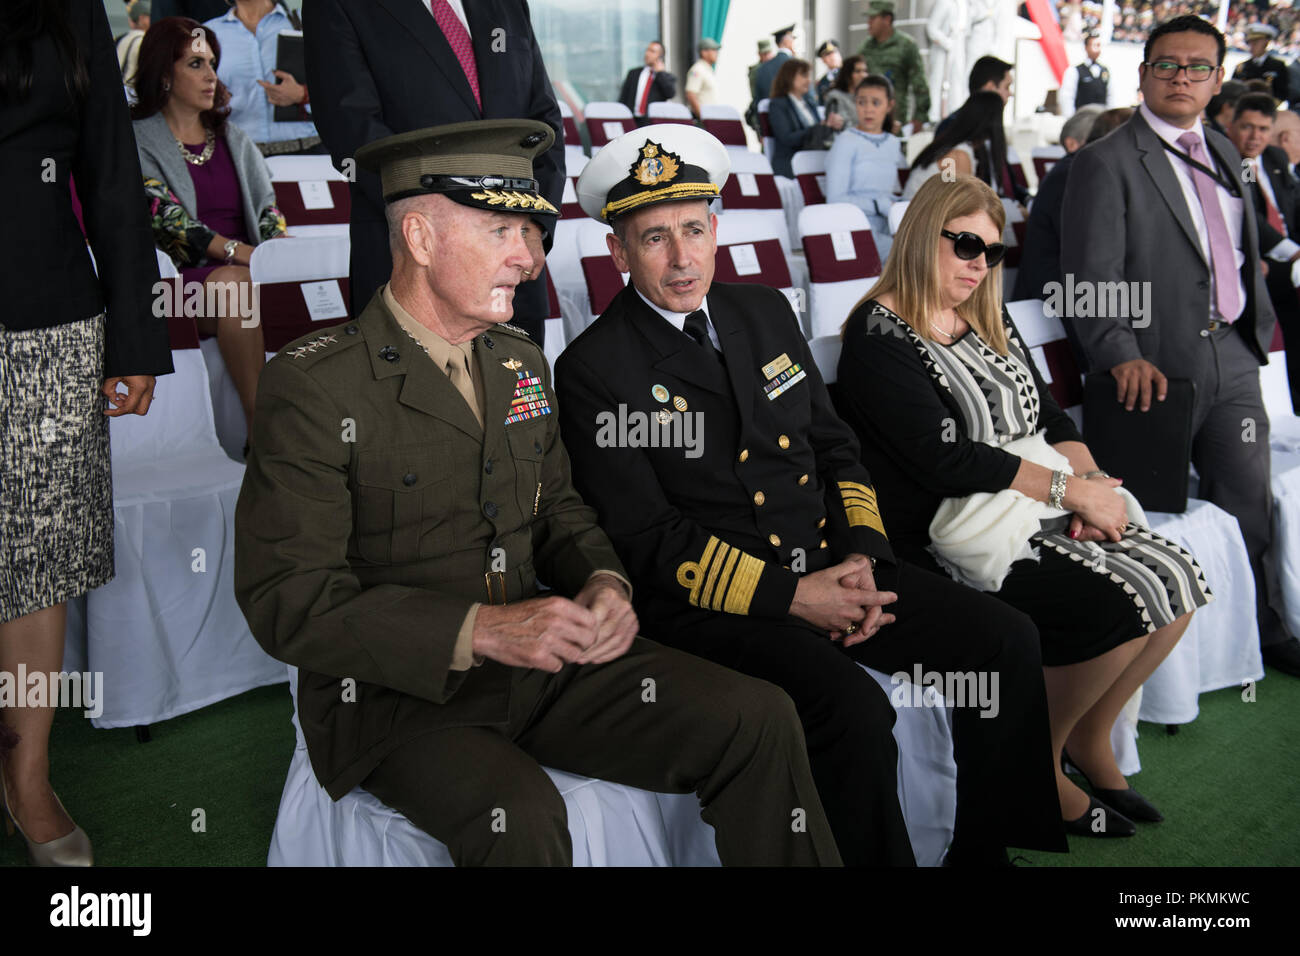 Mexico City, Mexico. 13th Sep, 2018. U.S. Marine Corps Gen. Joe Dunford, chairman of the Joint Chiefs of Staff, sits beside Urugrayan Navy Commandant Adm. Carlos Abilleira before the start of a Military Parade hosted by Mexican President, Enrique PeЦa Nieto, in Mexico City, Mexico, Sept. 13, 2018. Credit: Us Joint Staff/Russian Look/ZUMA Wire/Alamy Live News Stock Photo